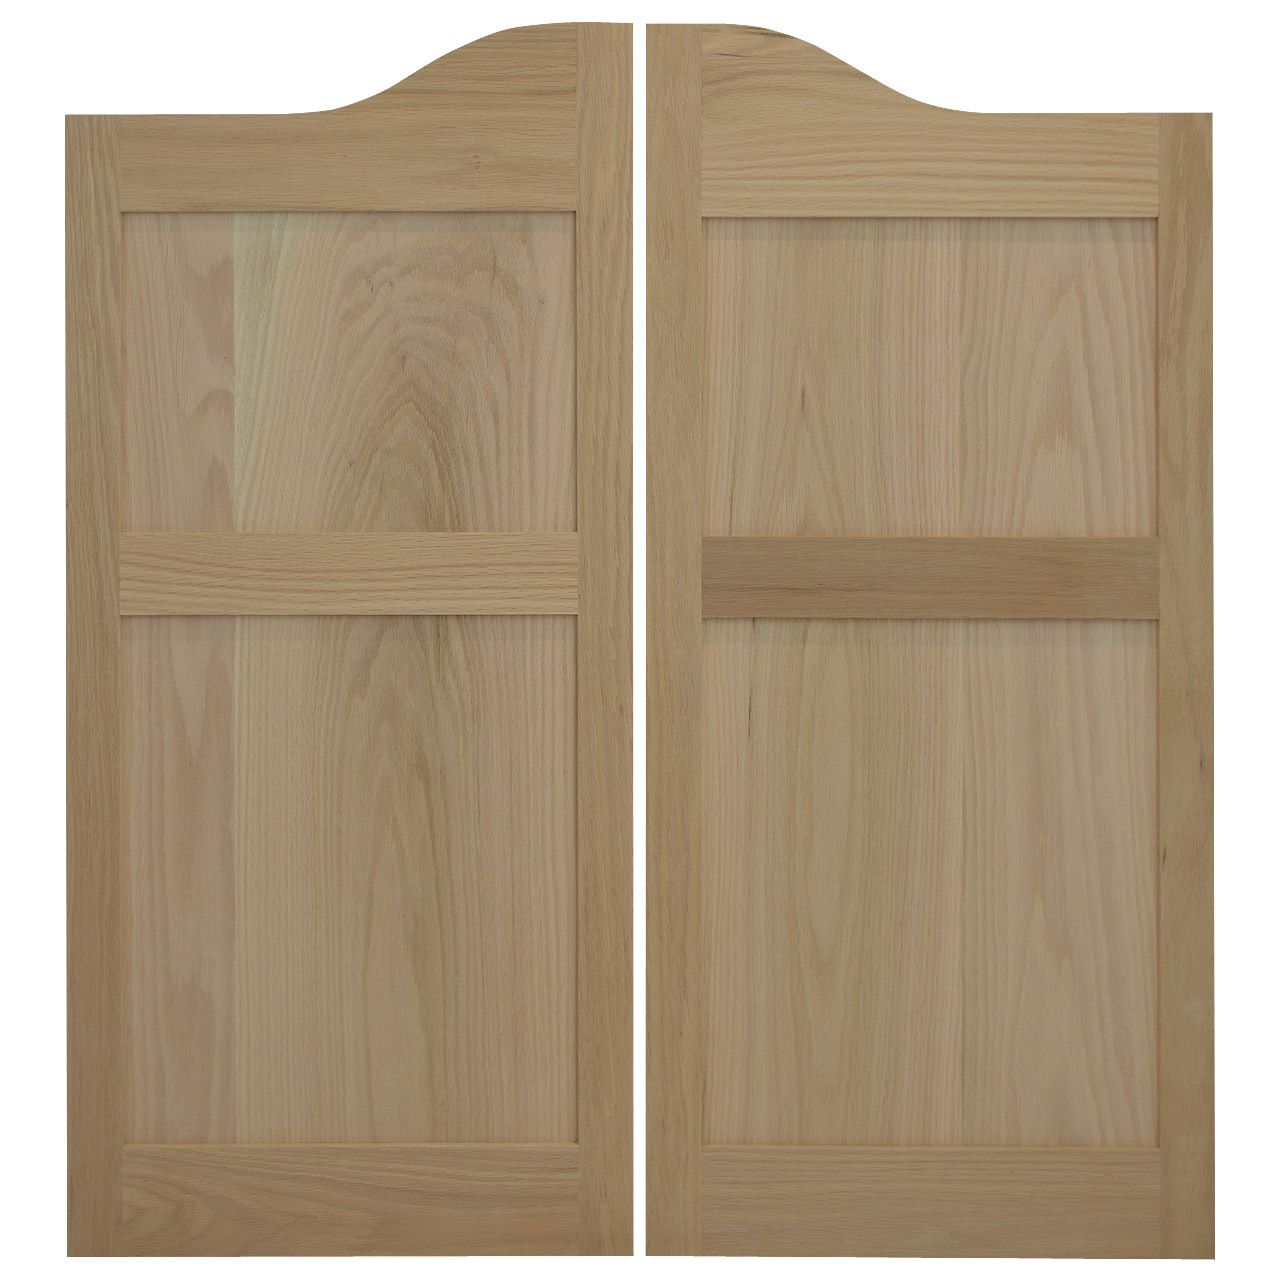 oak shaker style flat panel cafe doors saloon doors 24 - Shaker Cafe Ideas